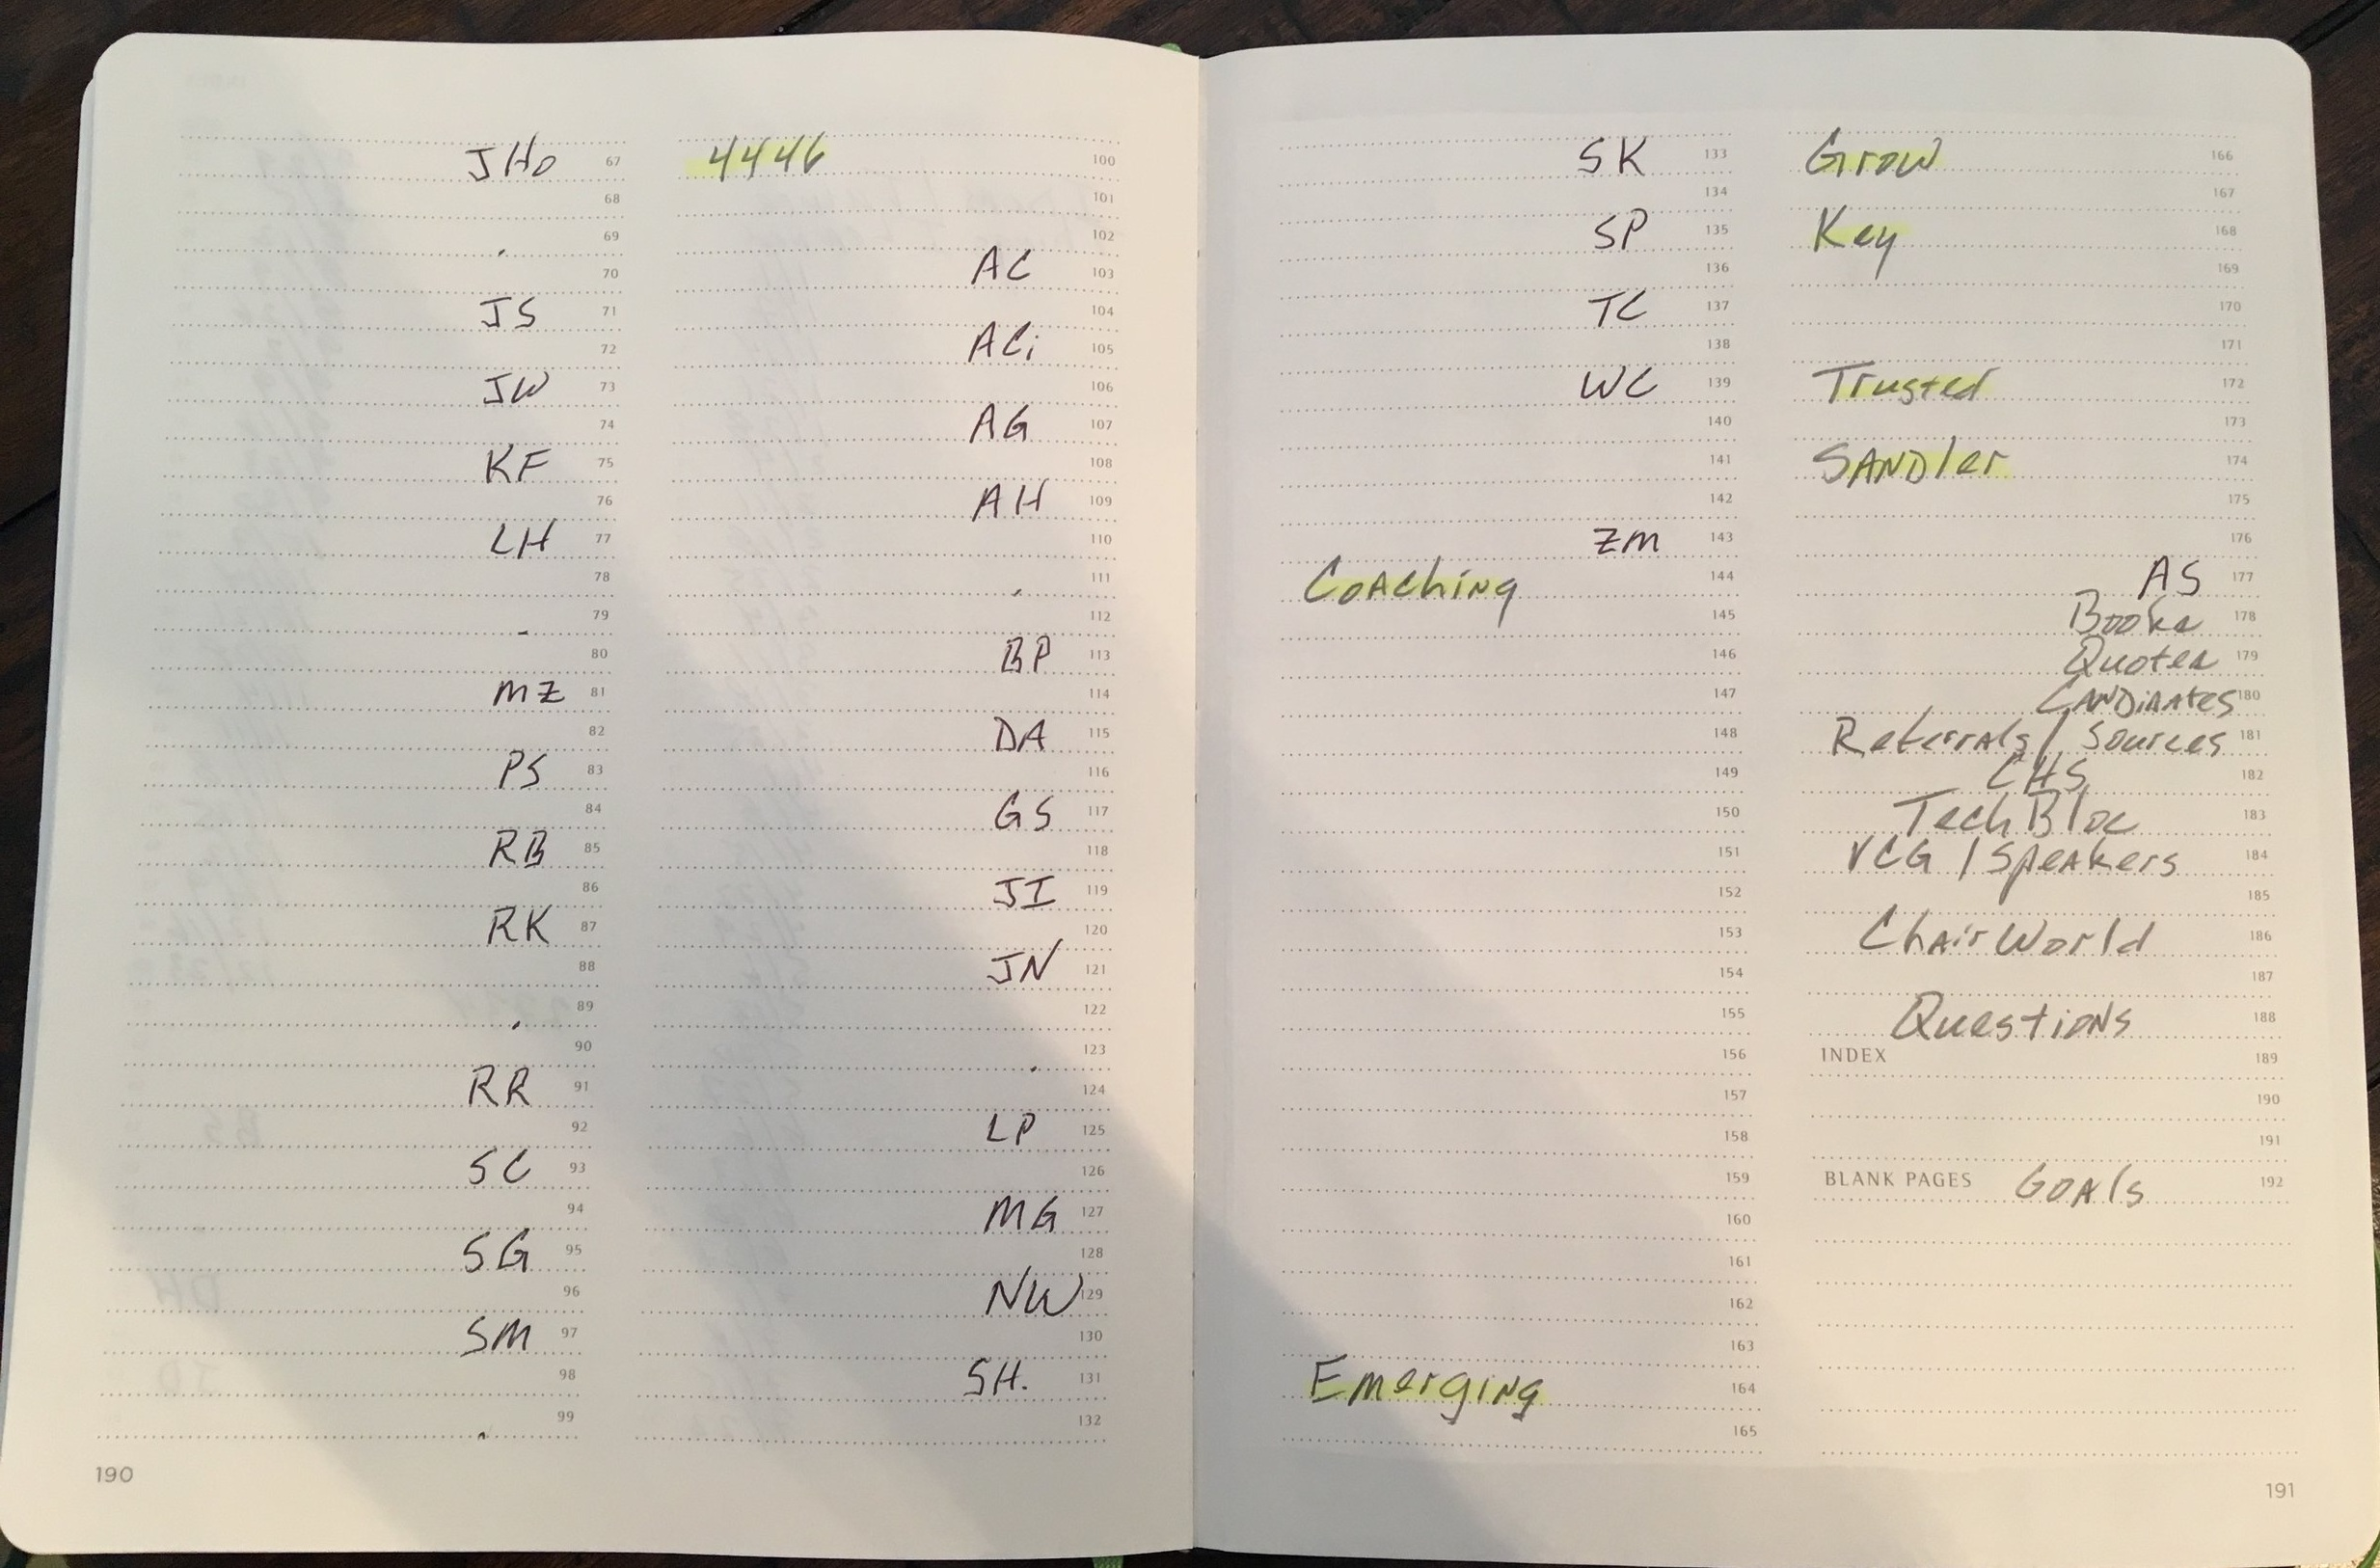 I use an initial system for members and assign each 2 pages for 121 notes. I block other pages for coaching, groups and boards.